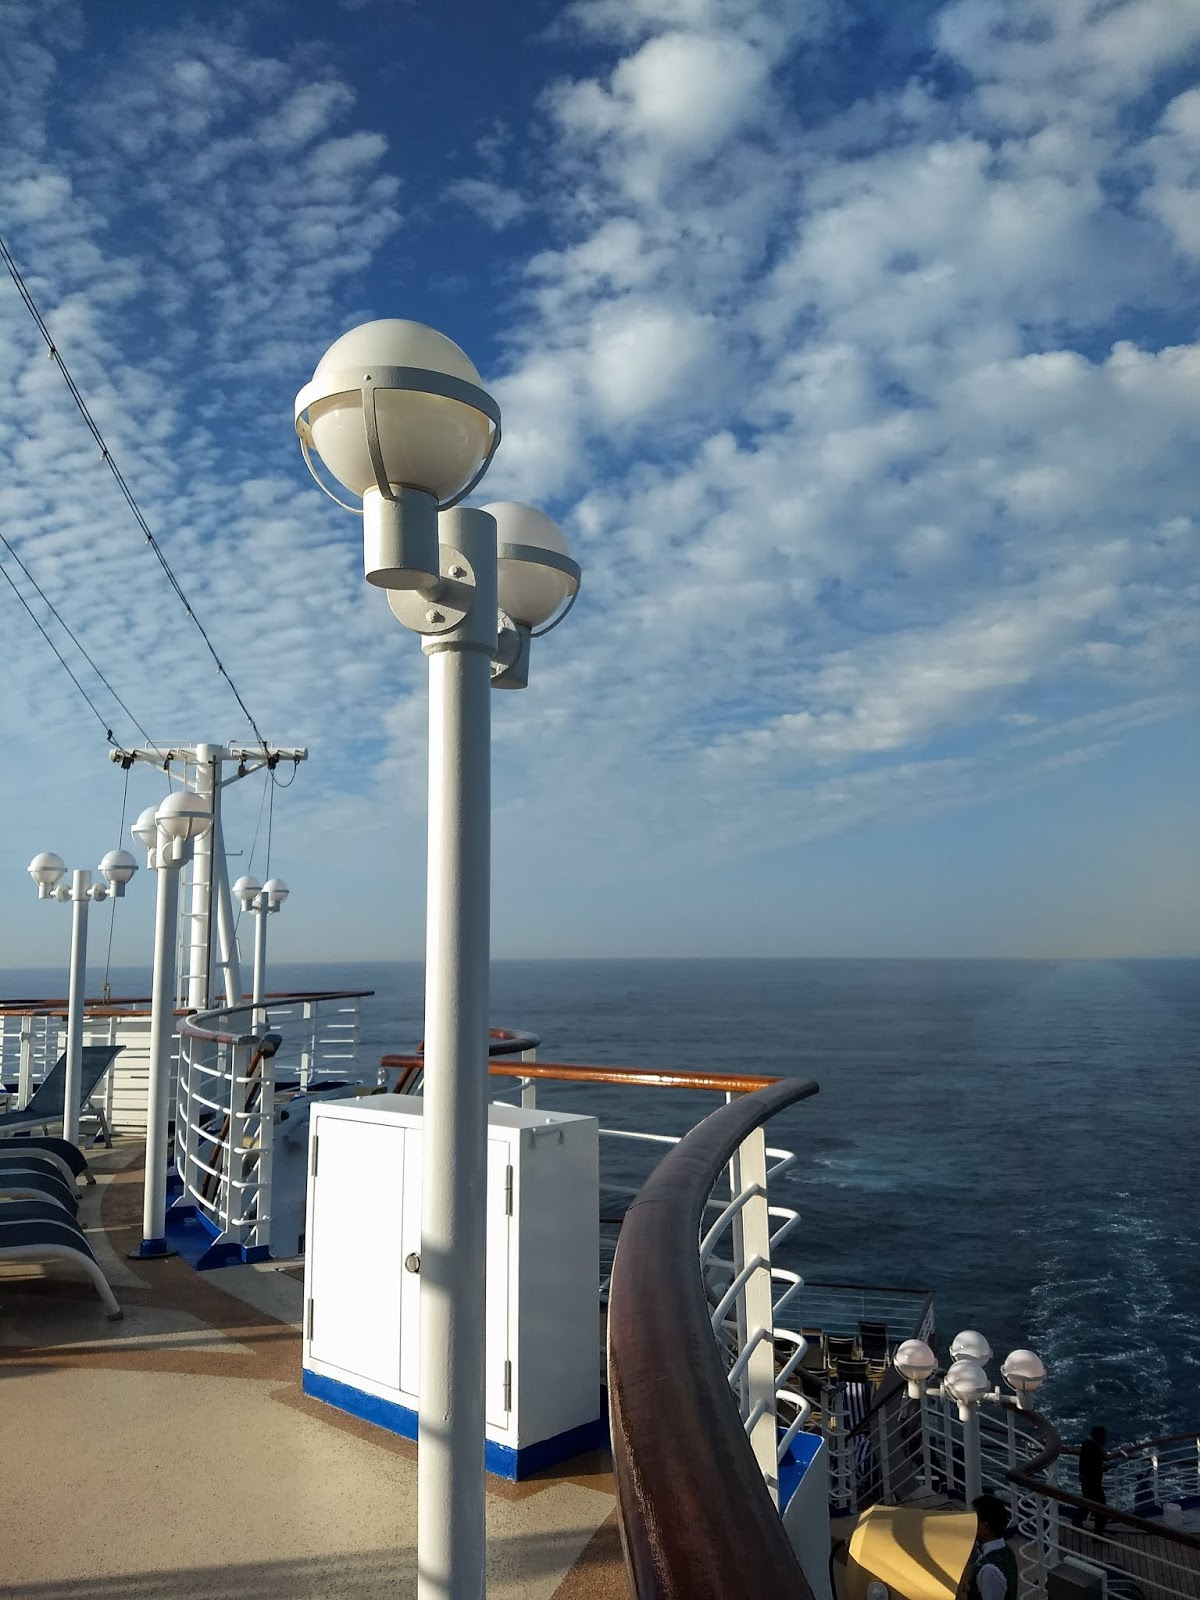 Cloudy, blue skies over the Atlantic Ocean from the Sapphire Princess.